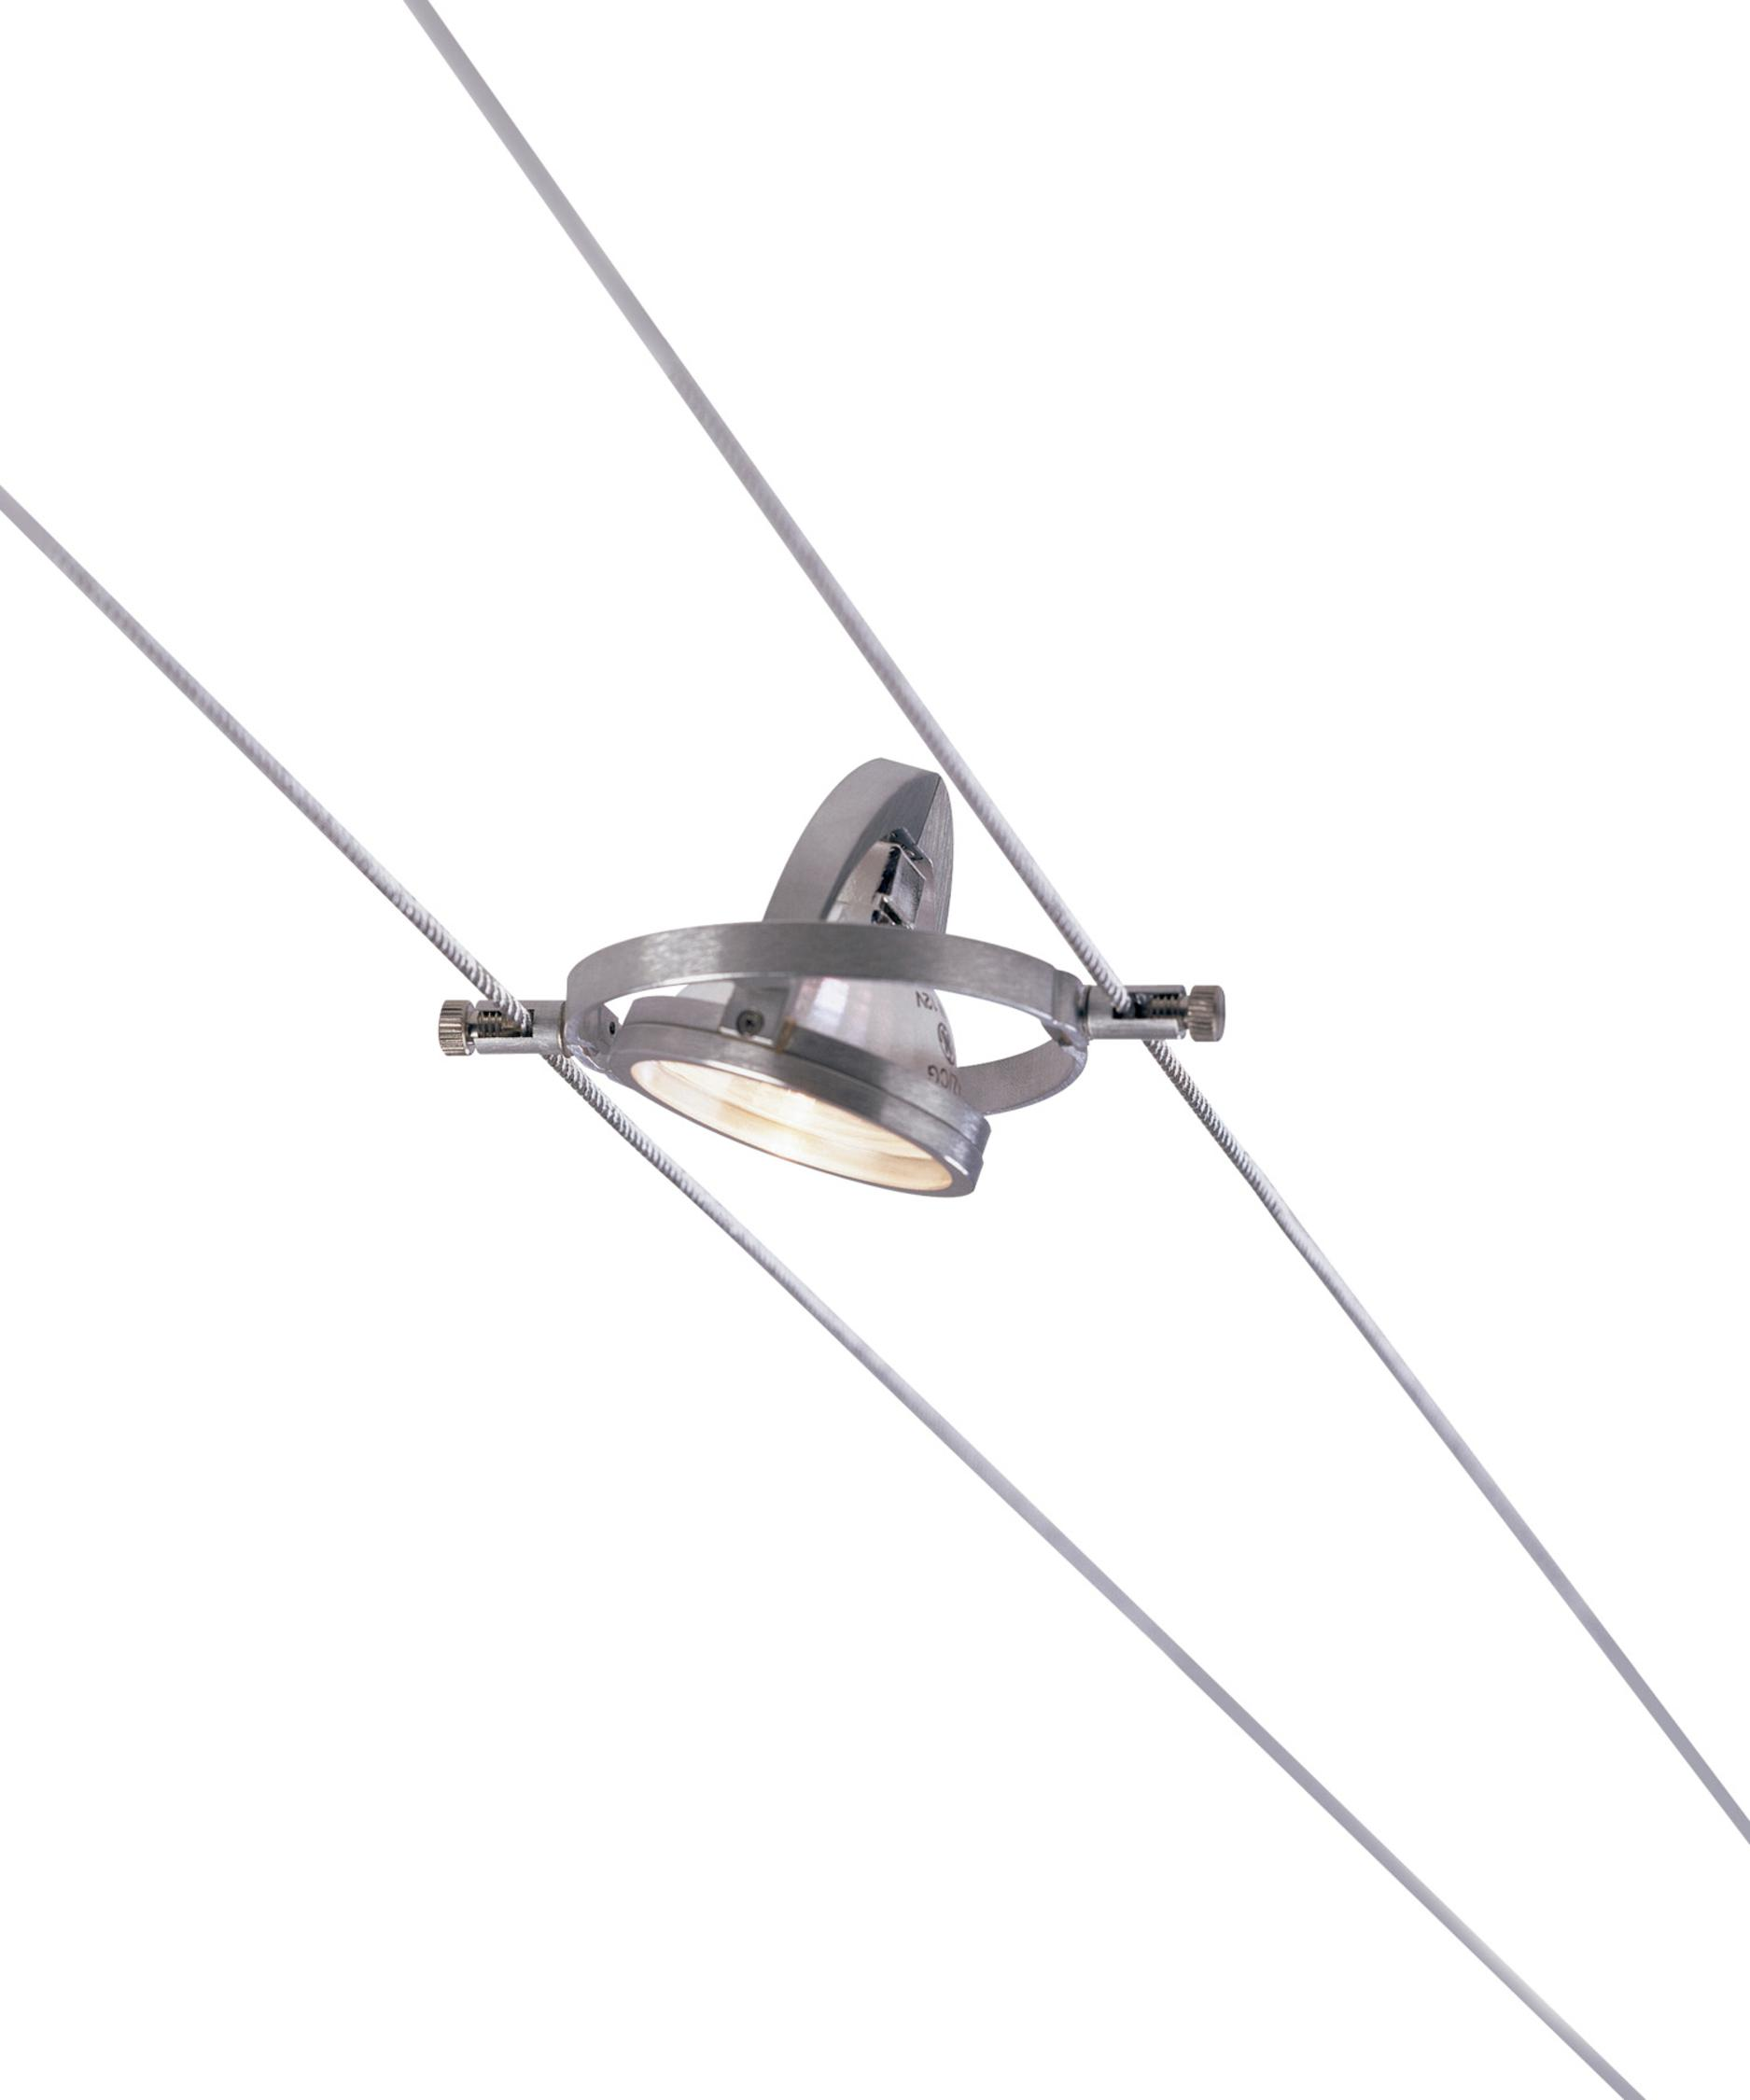 Halogen Cable Lighting